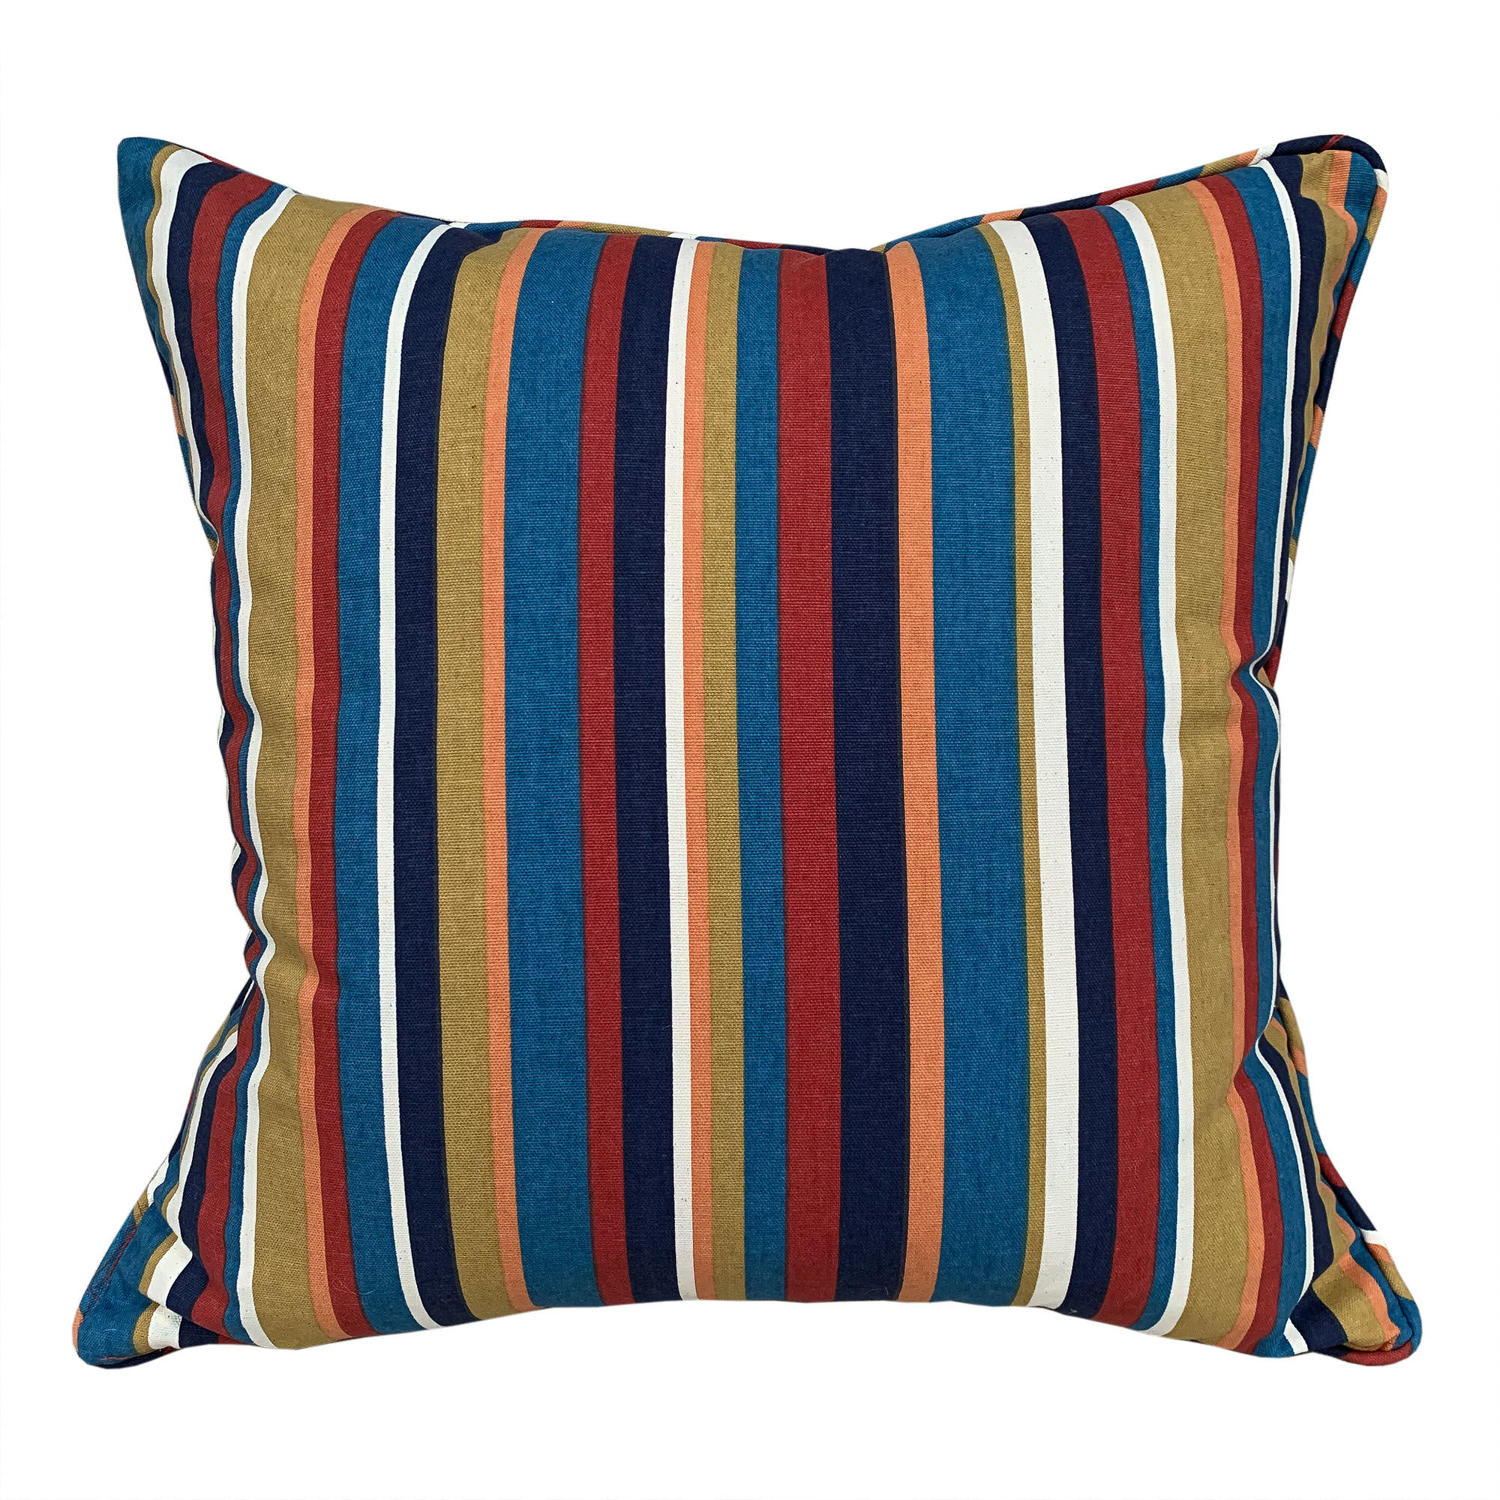 Vintage canvas striped cushions